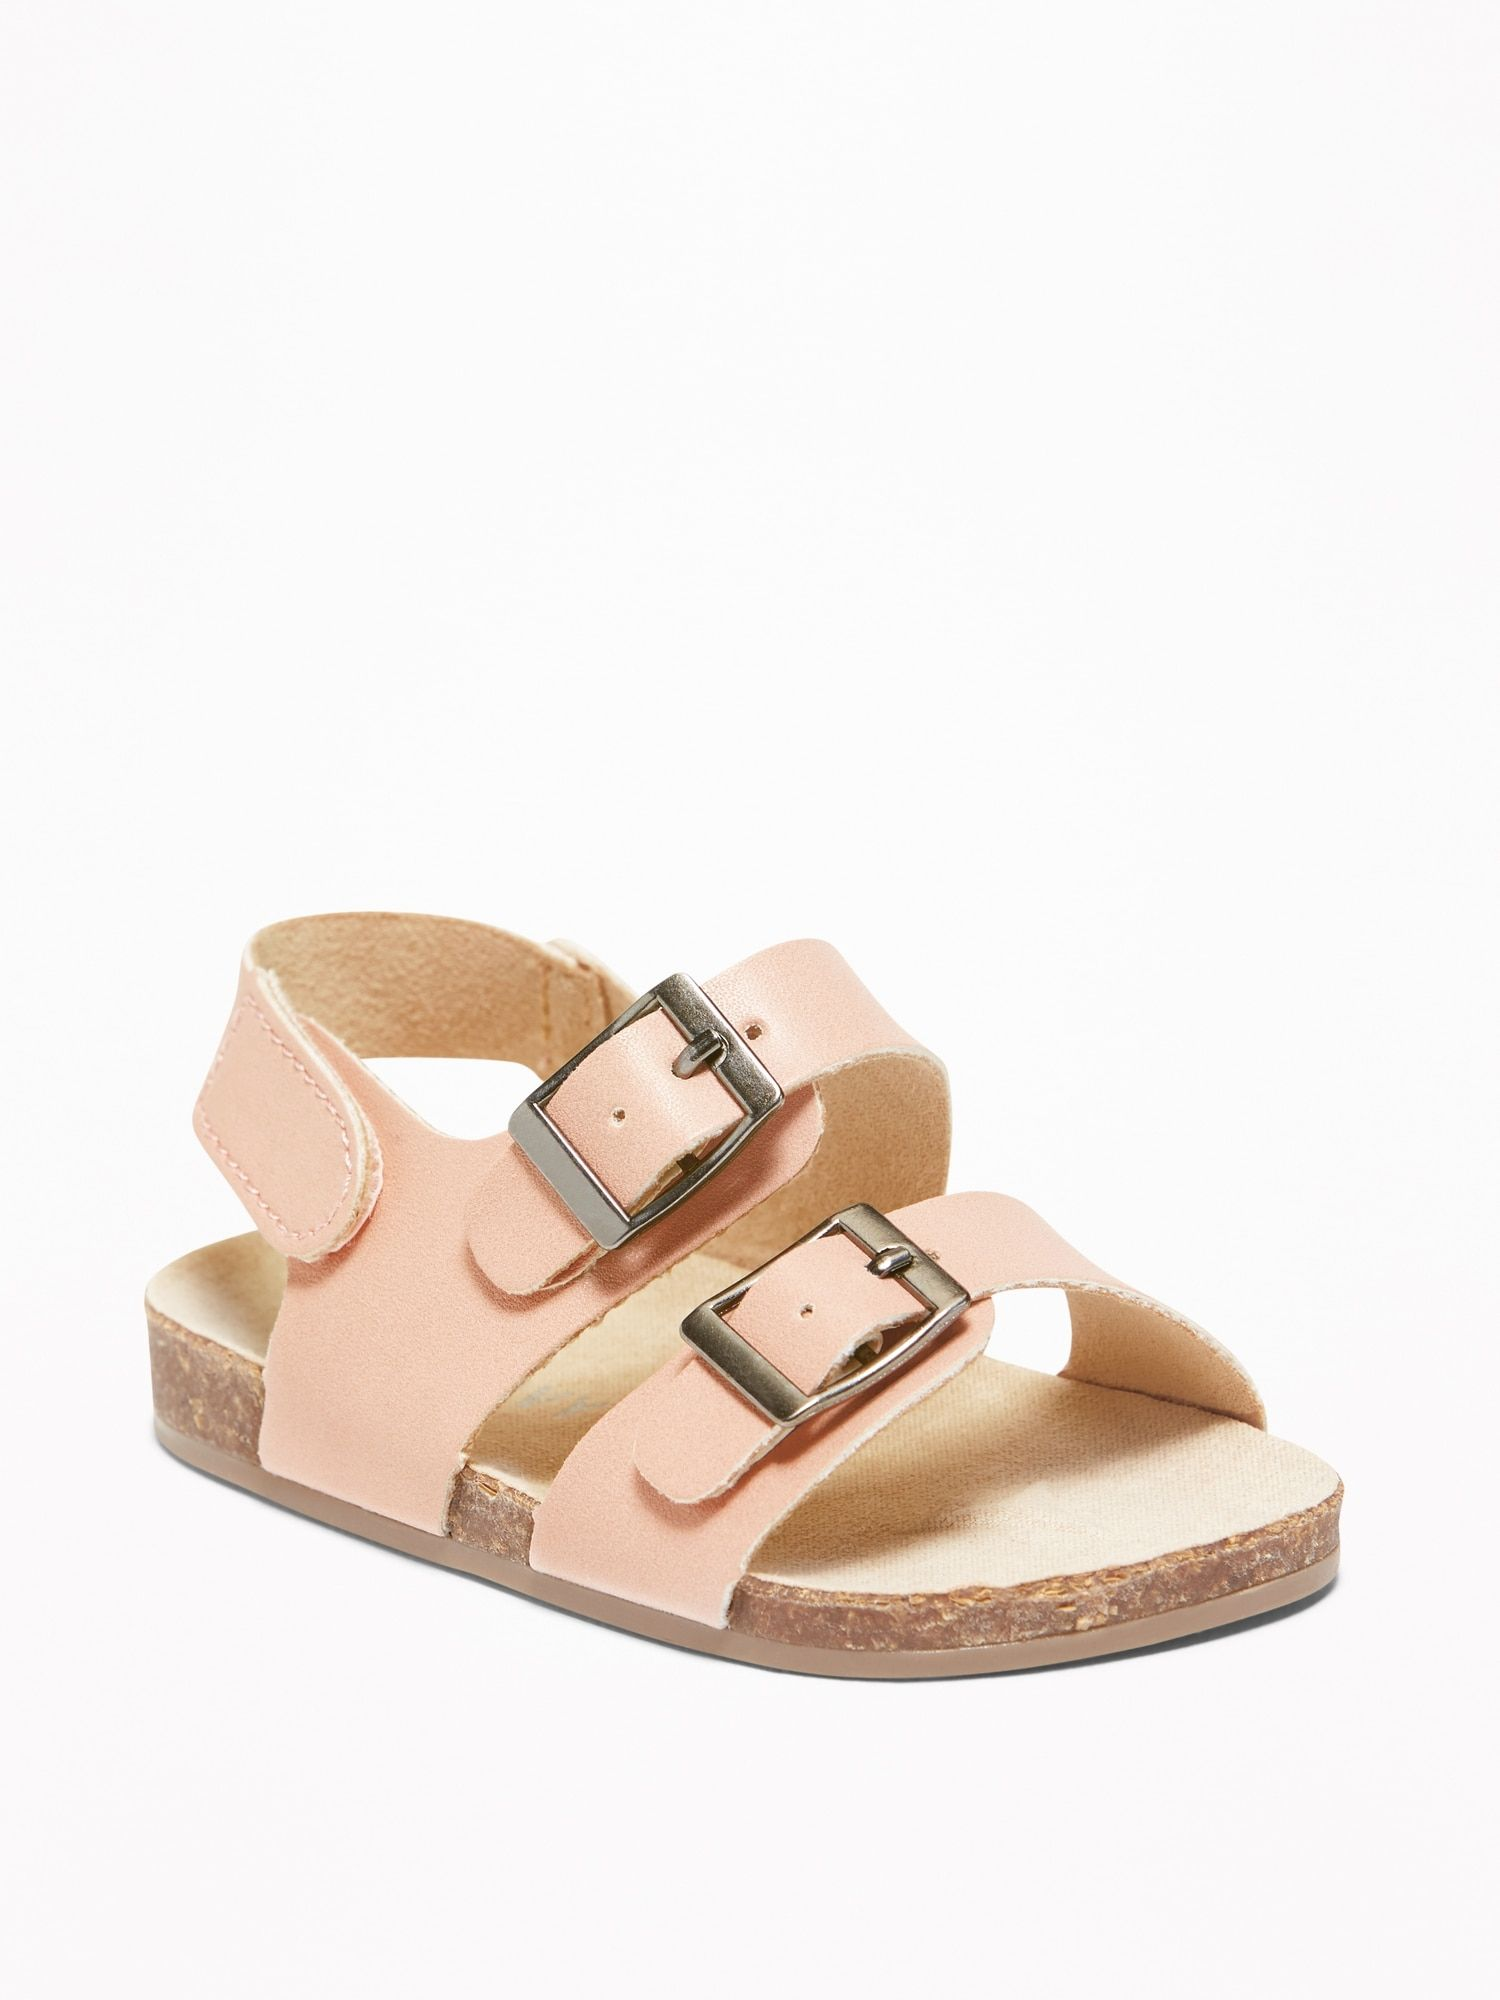 48480ad5d3b40 Faux-Leather Double-Buckle Sandals for Baby | m i s s i o n ...